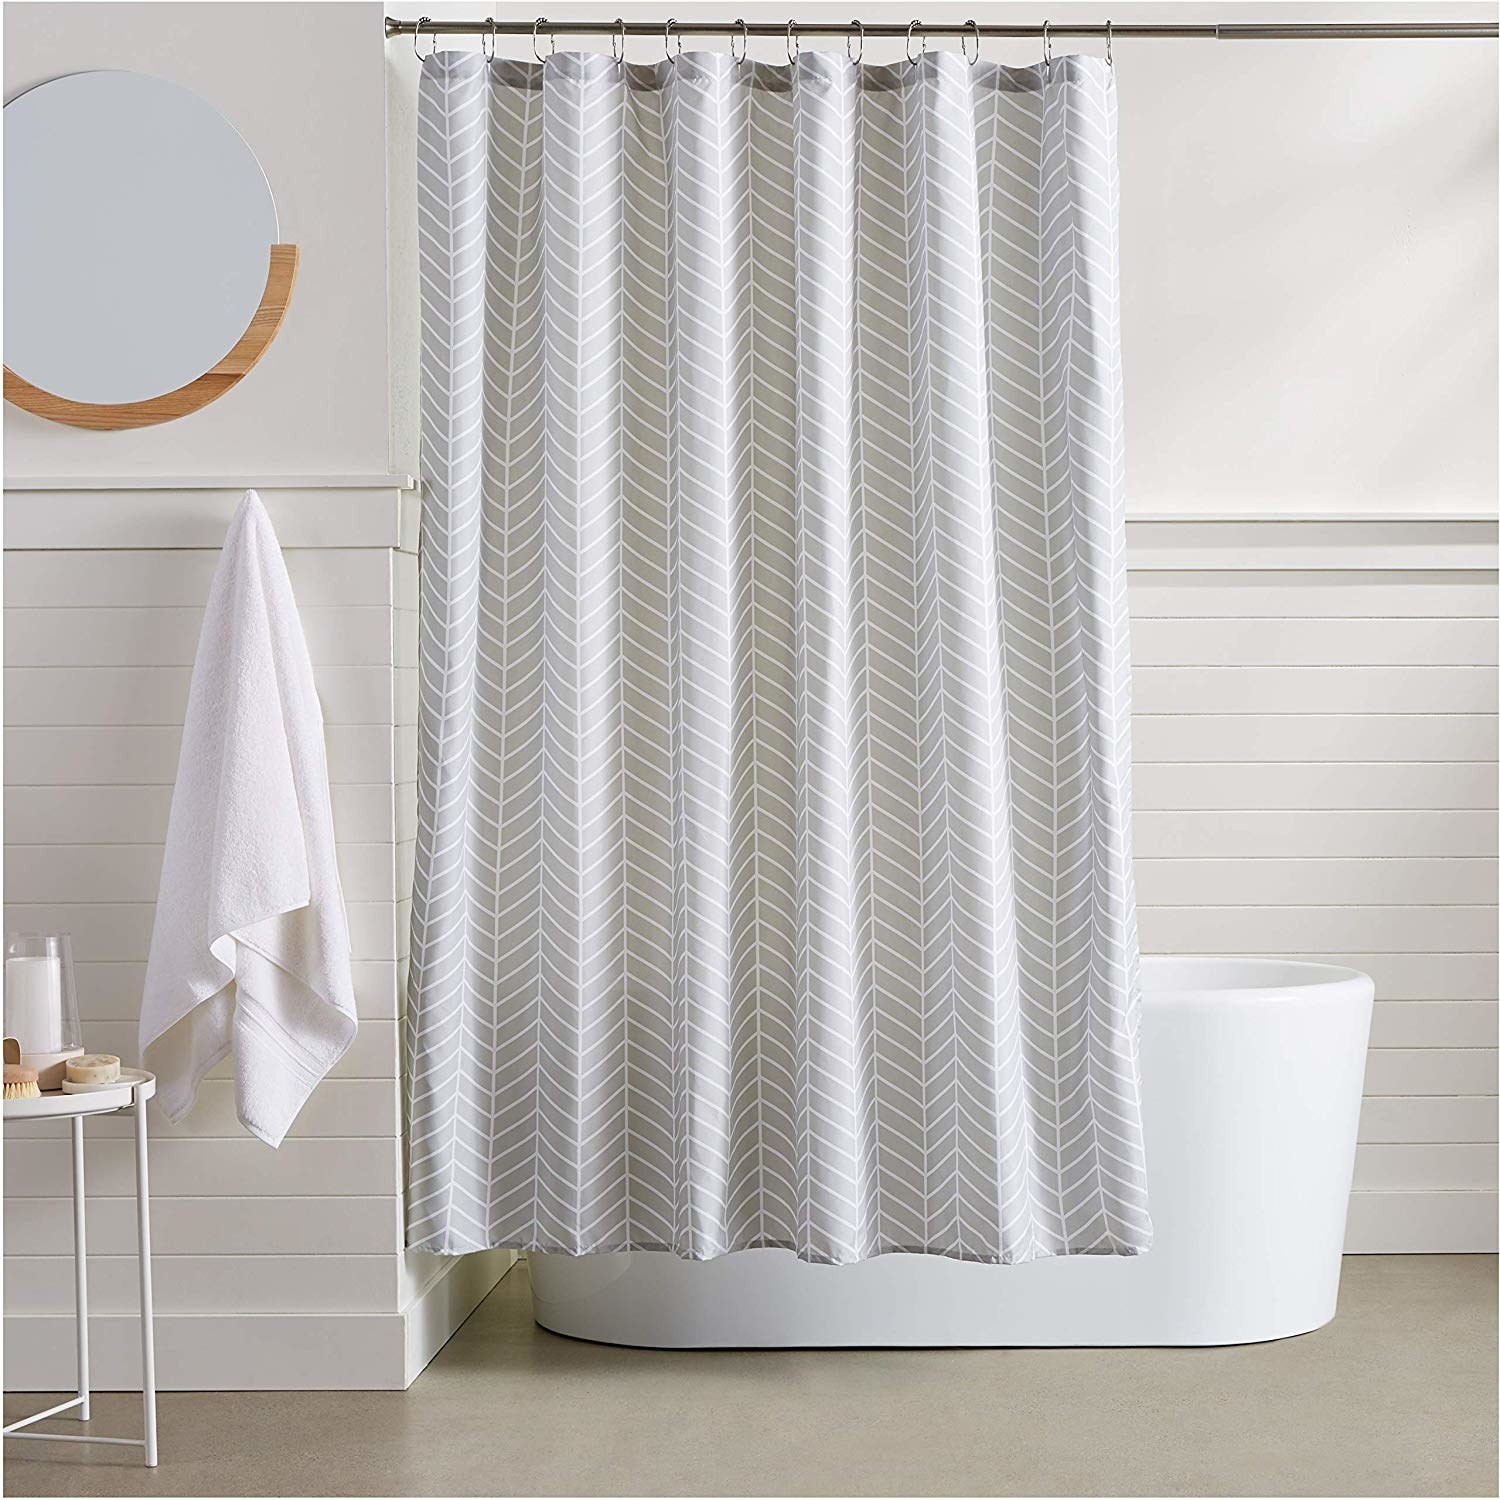 a gray herringbone shower curtain